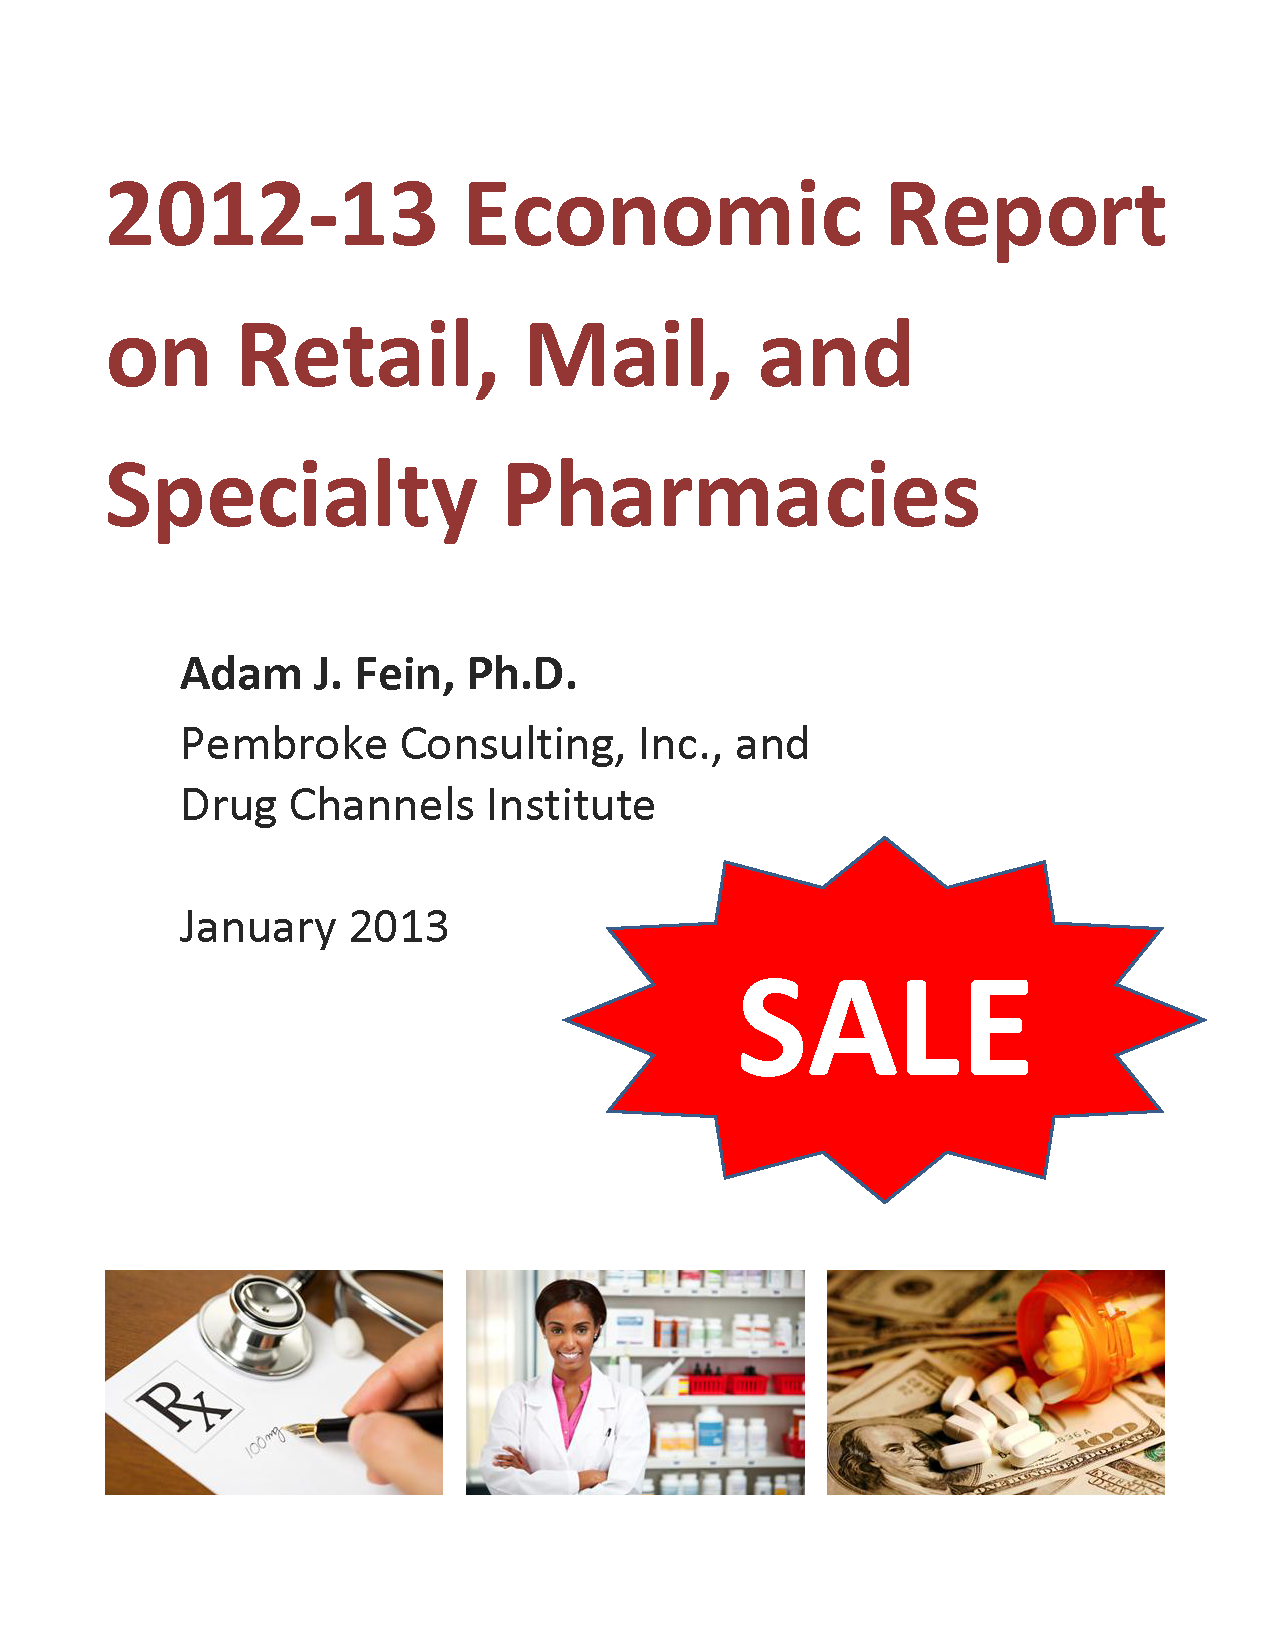 2012-13 Economic Report on Retail, Mail, and Specialty Pharmacies